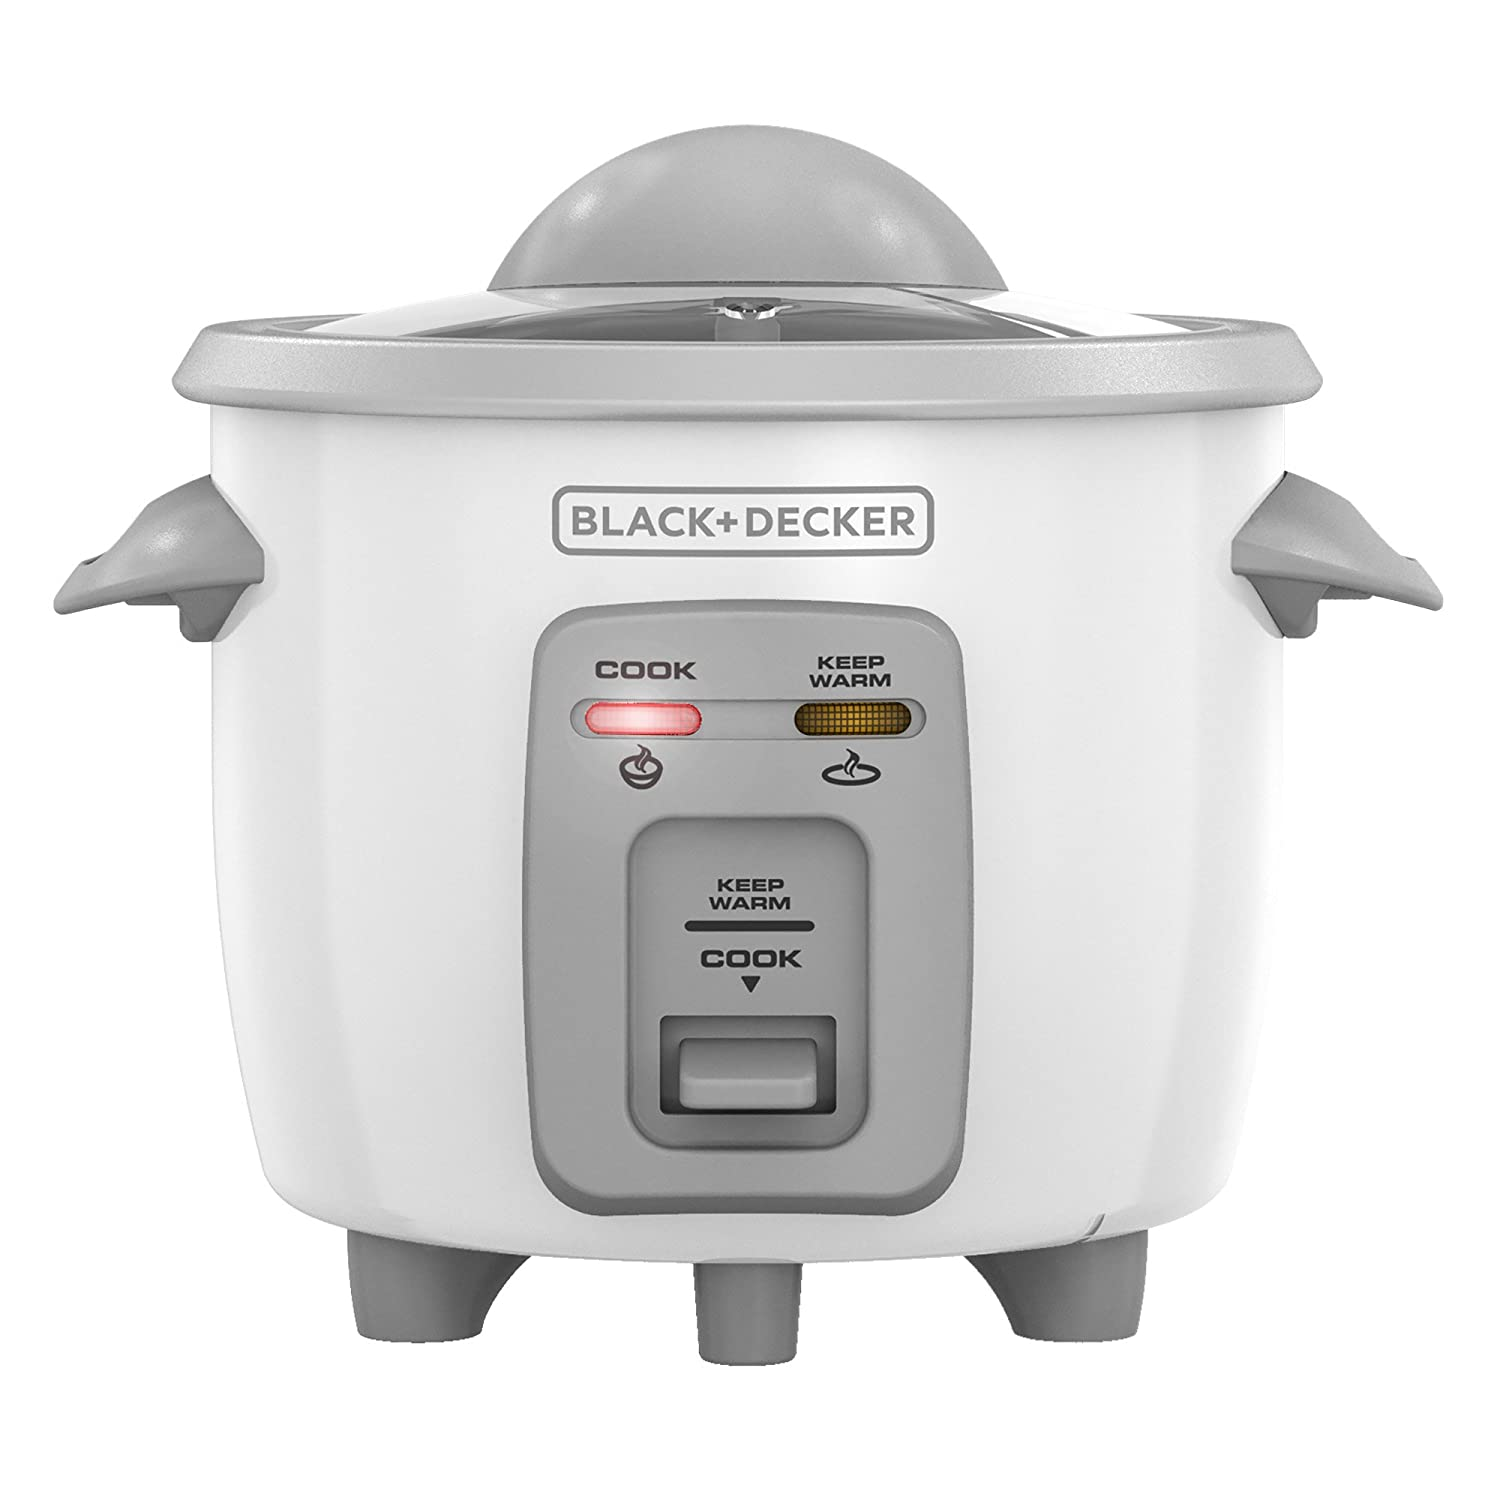 Amazon.com: BLACK+DECKER RC3303 1.5-Cup Dry/3-Cup Cooked Compact Rice Cooker,  White: Kitchen & Dining